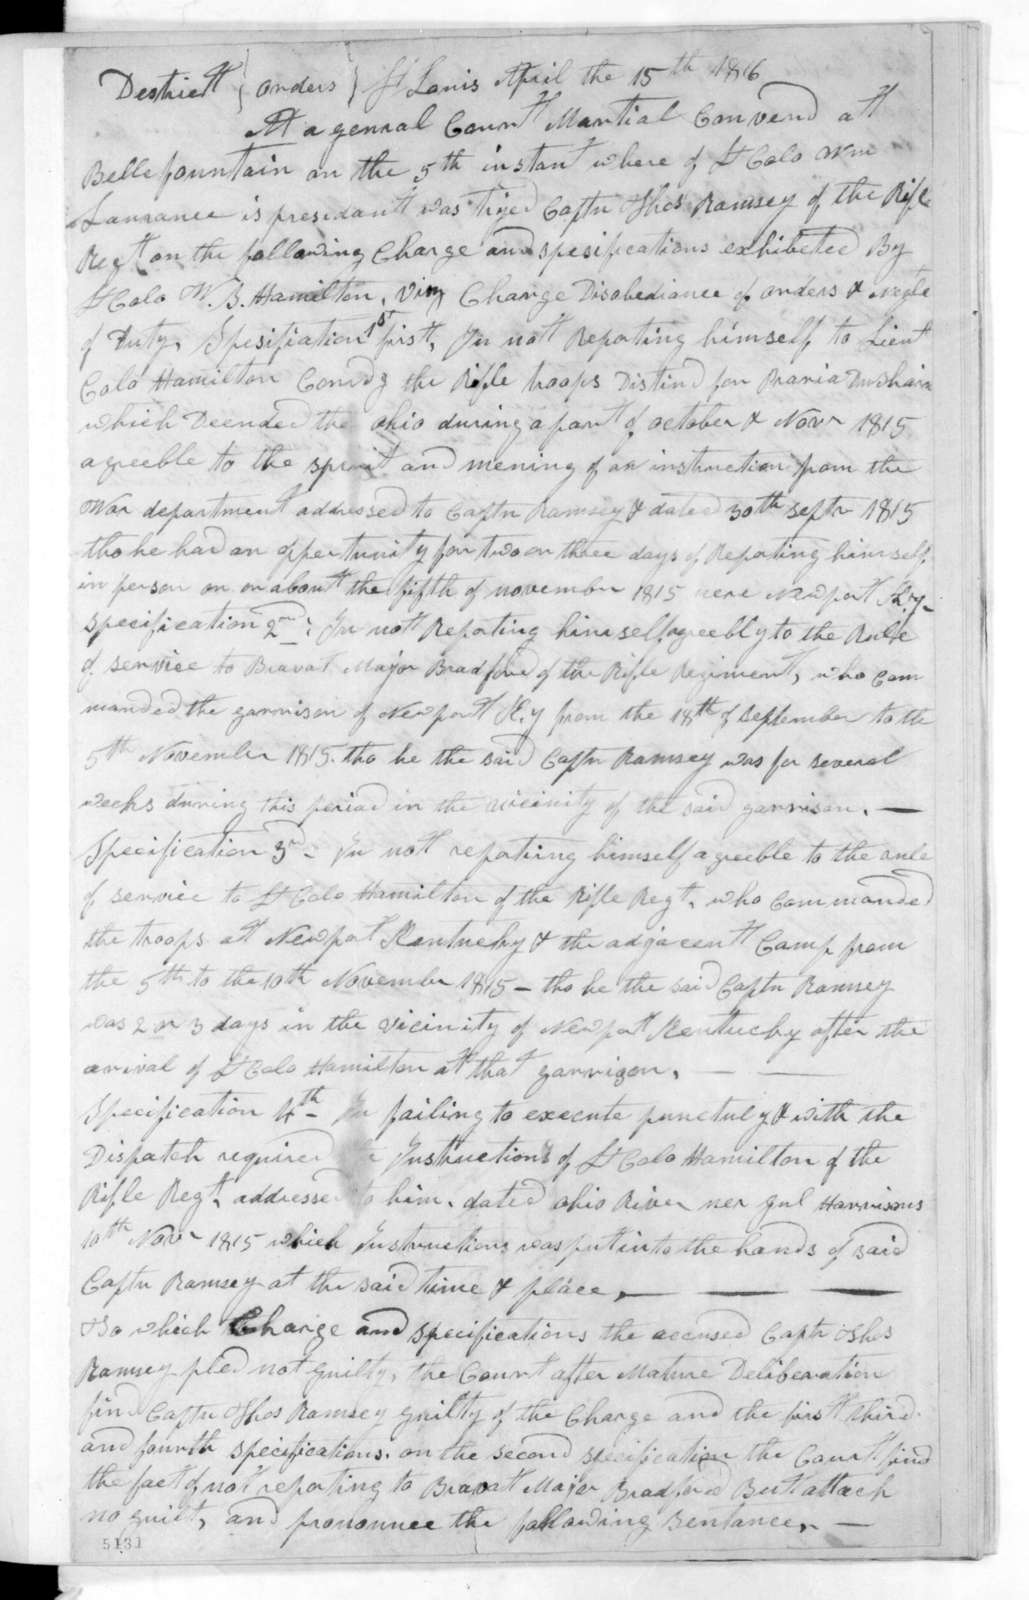 Court Martial Proceedings - Belle Fountain Army Headquarters, April 15, 1816